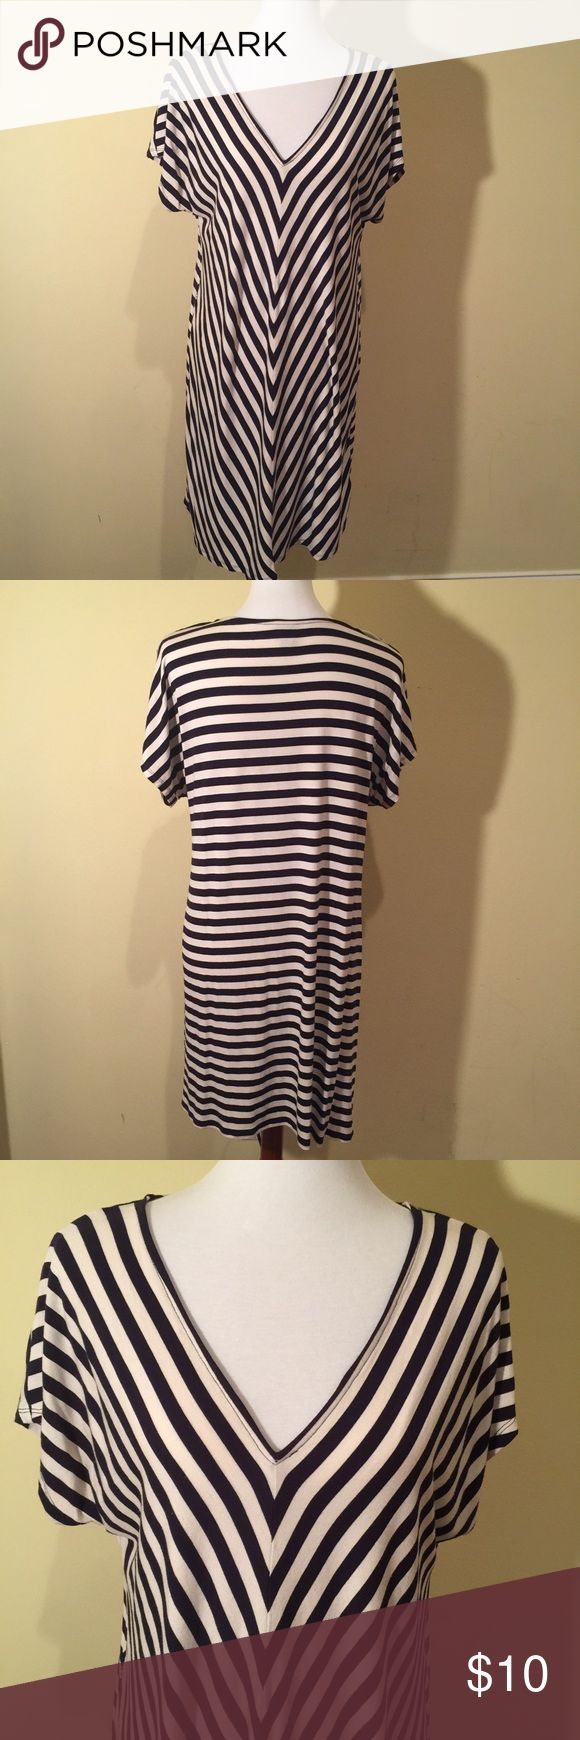 1000+ ideas about Target Dresses on Pinterest Missoni, Lilly pulitzer and Sweaters